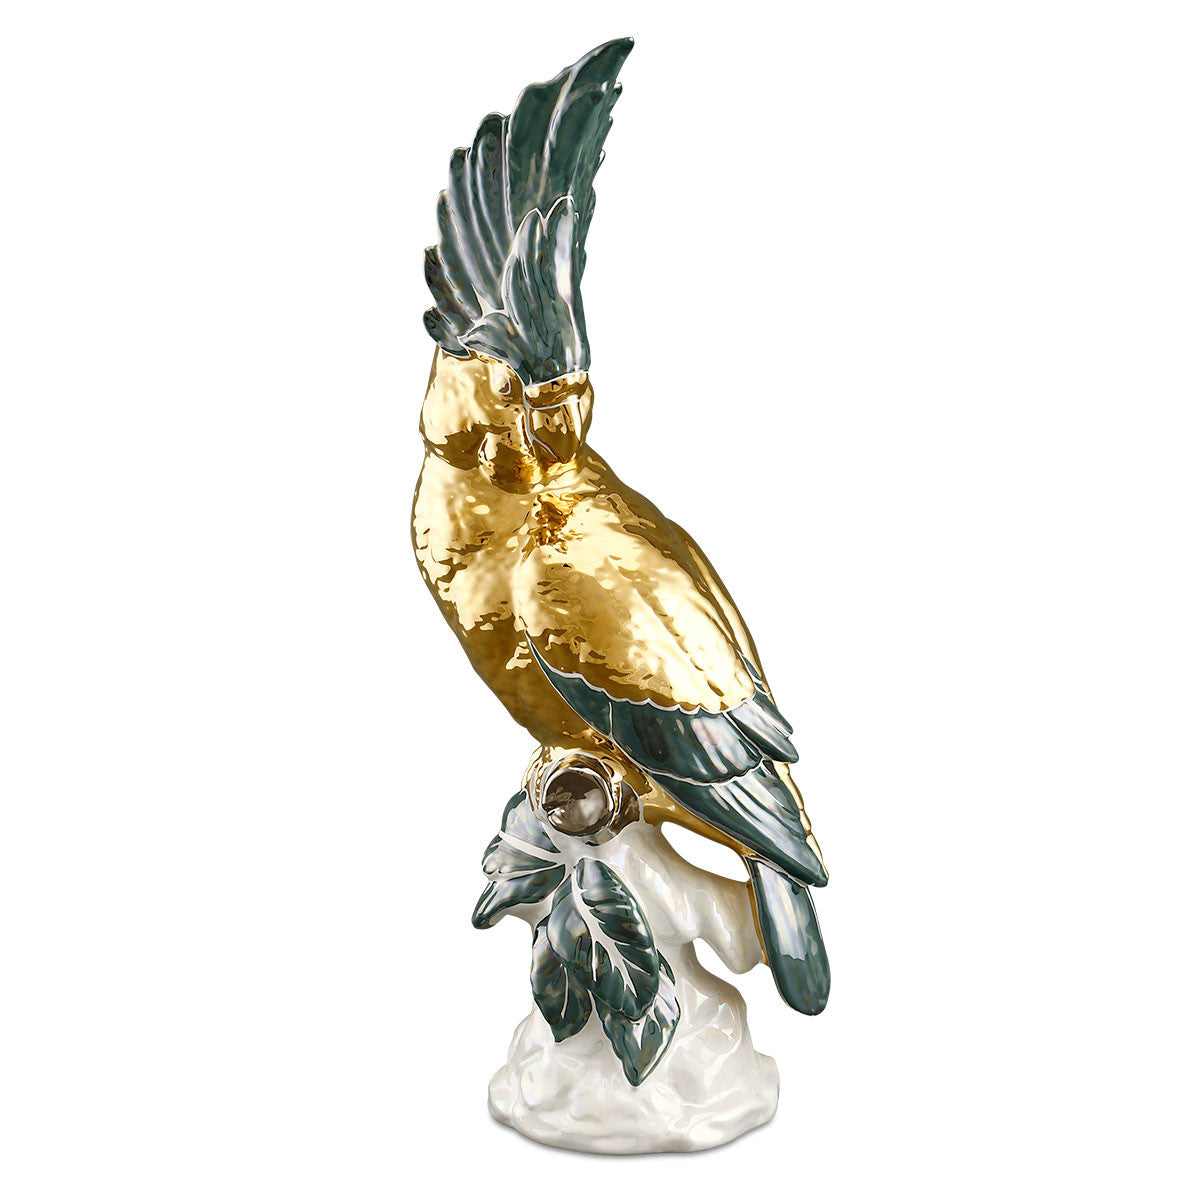 Ceramic Cockatoo parrot figurine with gold accents